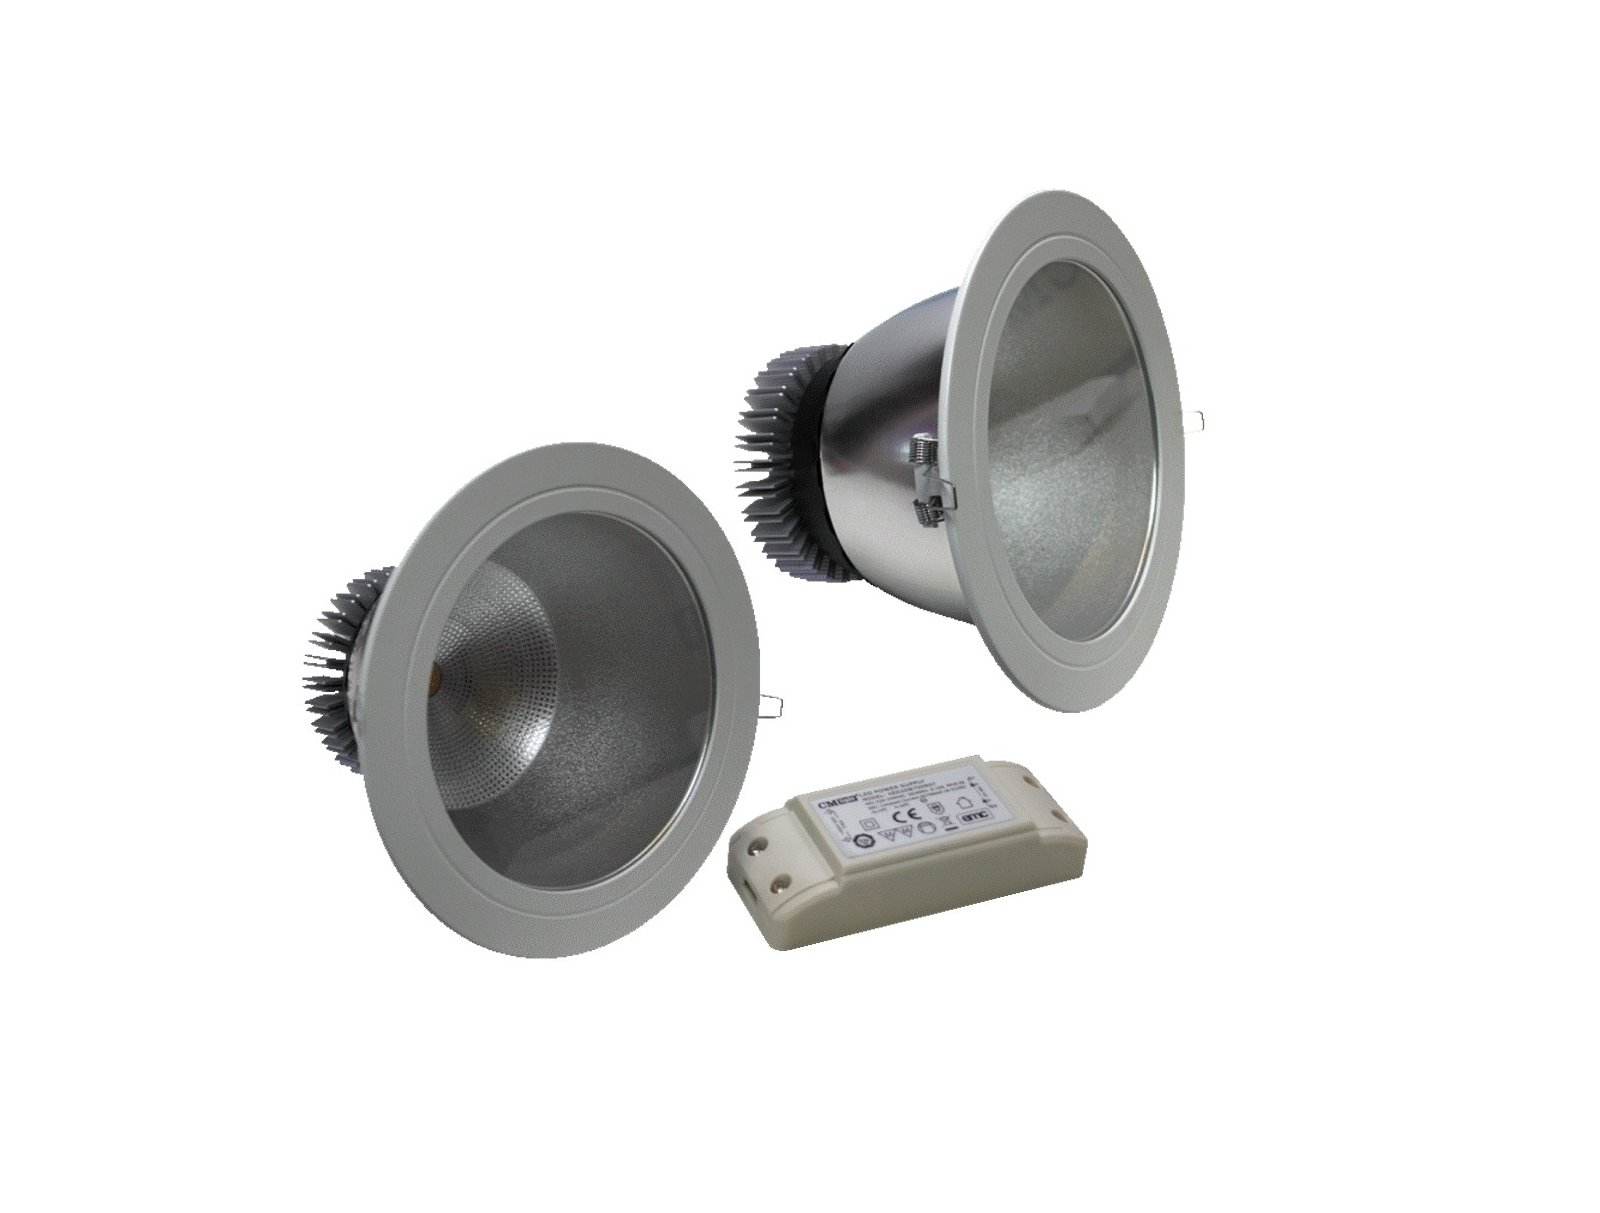 led cob downlight spot einbaustrahler decke einbau strahler leuchte 5w 20w 230v ebay. Black Bedroom Furniture Sets. Home Design Ideas